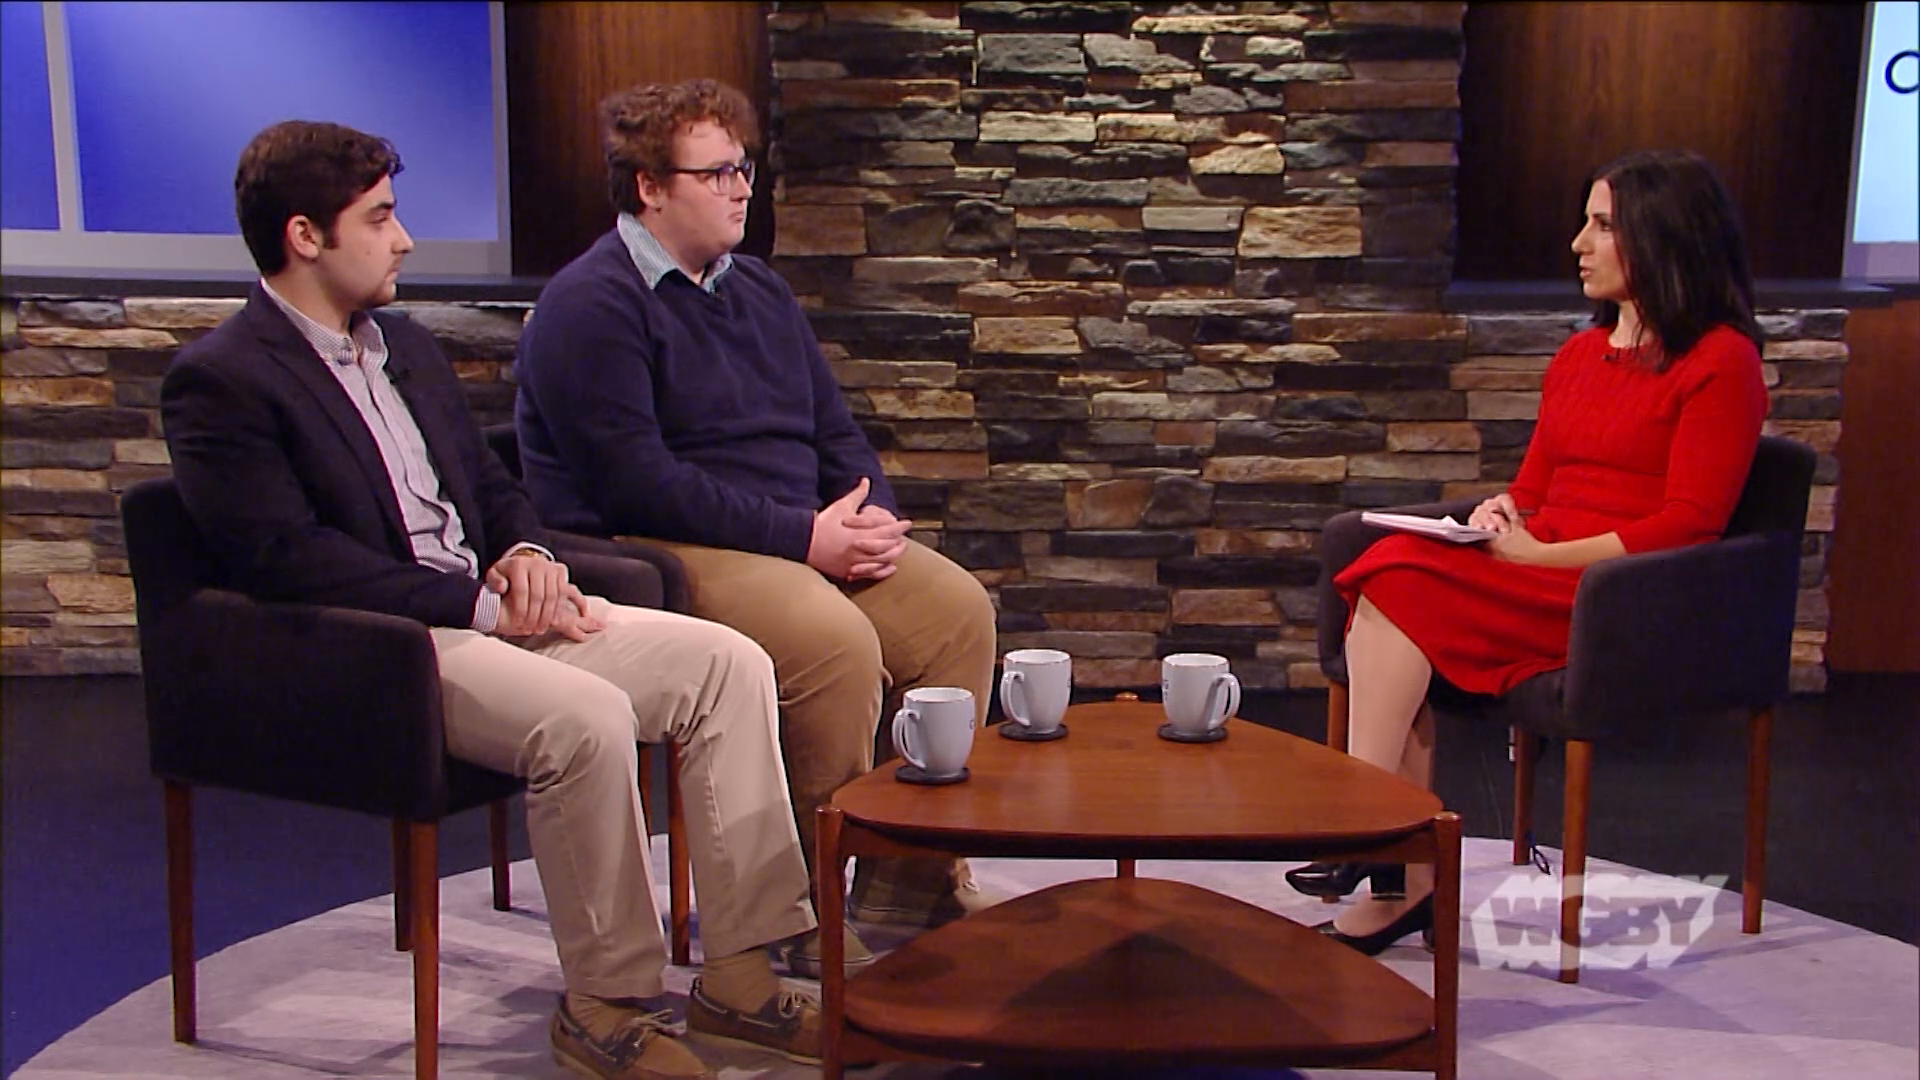 WATCH: UMass Democrats President Tim Ennis and UMass Republicans President Chad Cordani share what issues matter to young voters in 2020.